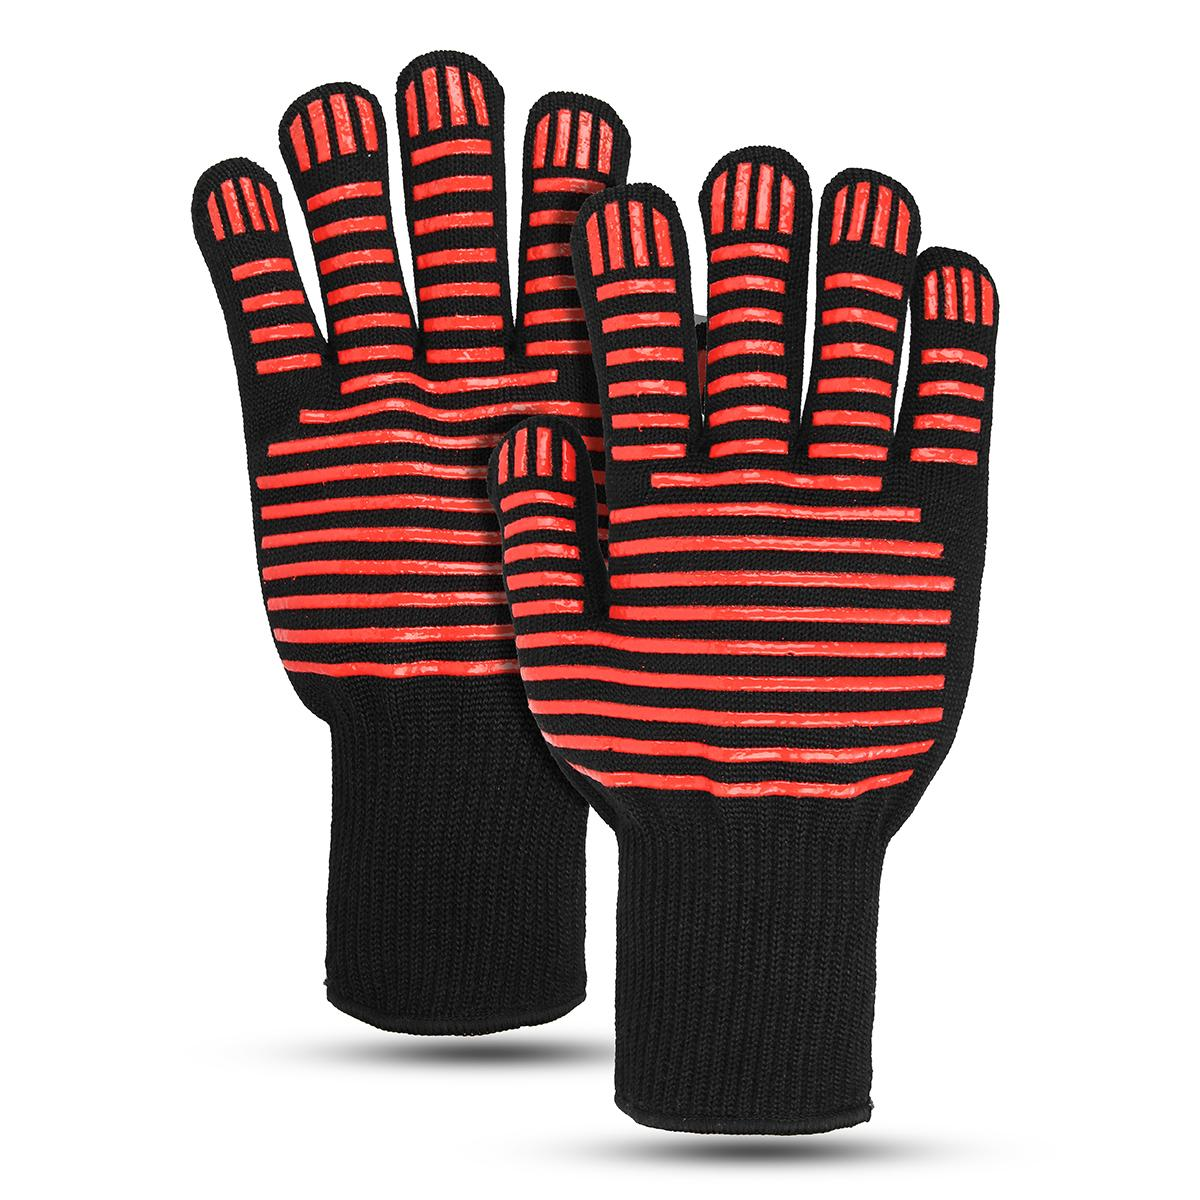 Safurance Insulate Anti-skid Heat Resistance Gloves For BBQ Oven Grill Cooking Baking Workplace Safety